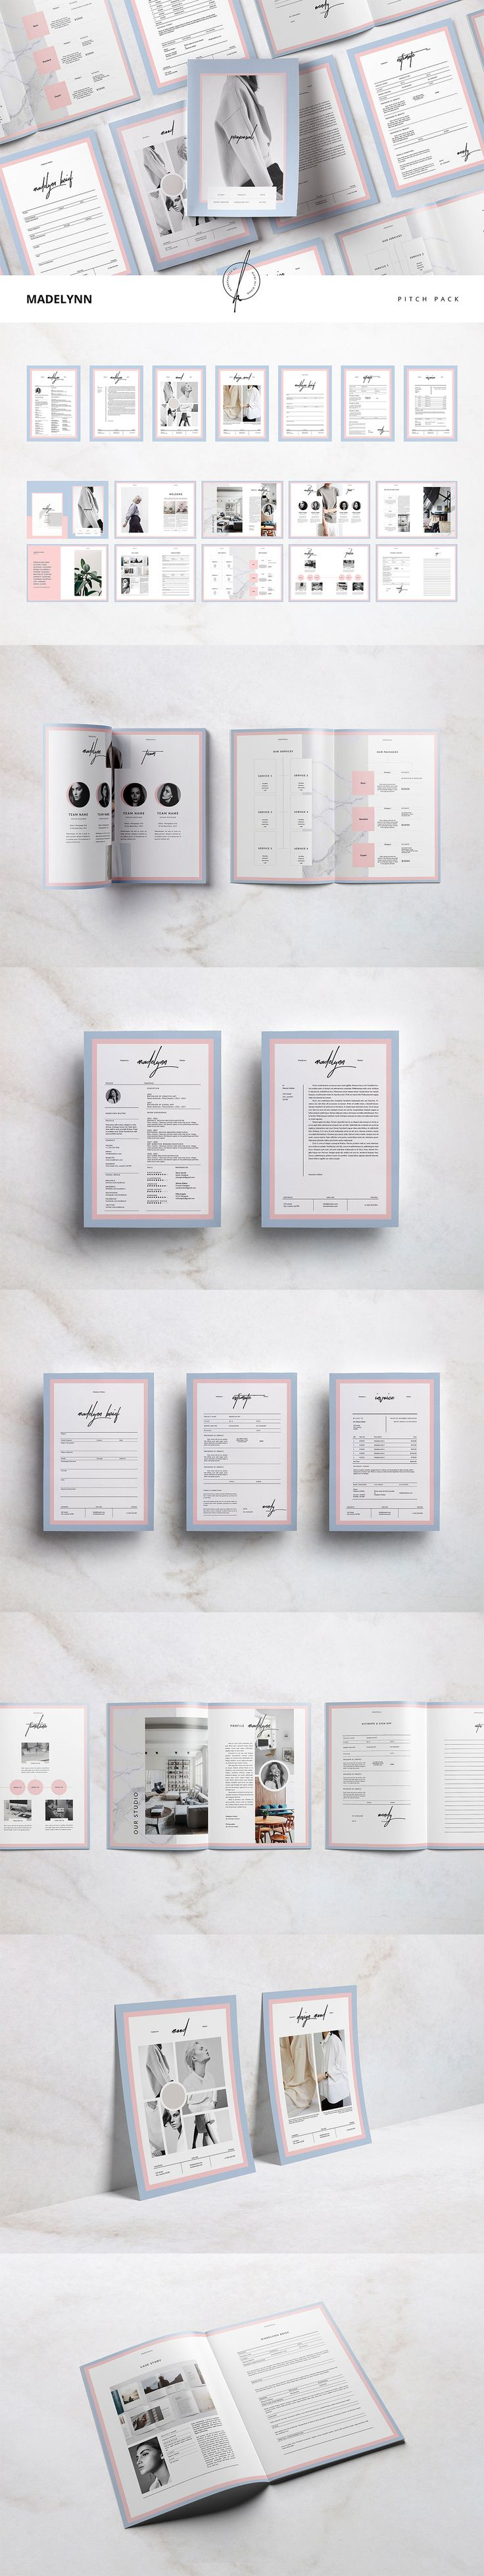 """Download #FREE """"Madelynn Pitch Pack"""" includes #proposal and other #templates made with #Adobe #InDesign to simplify your #business with clients. This pitch pack collection has 8 templates with the same clean and minimal layout theme. A #design of 20 page proposal template and 7 other trinkets comes in two sizes, standard size A4 and US letter size for variations and ready to #print.( #freebies #feminine #typography #brochure #c#coverletter #creative )"""